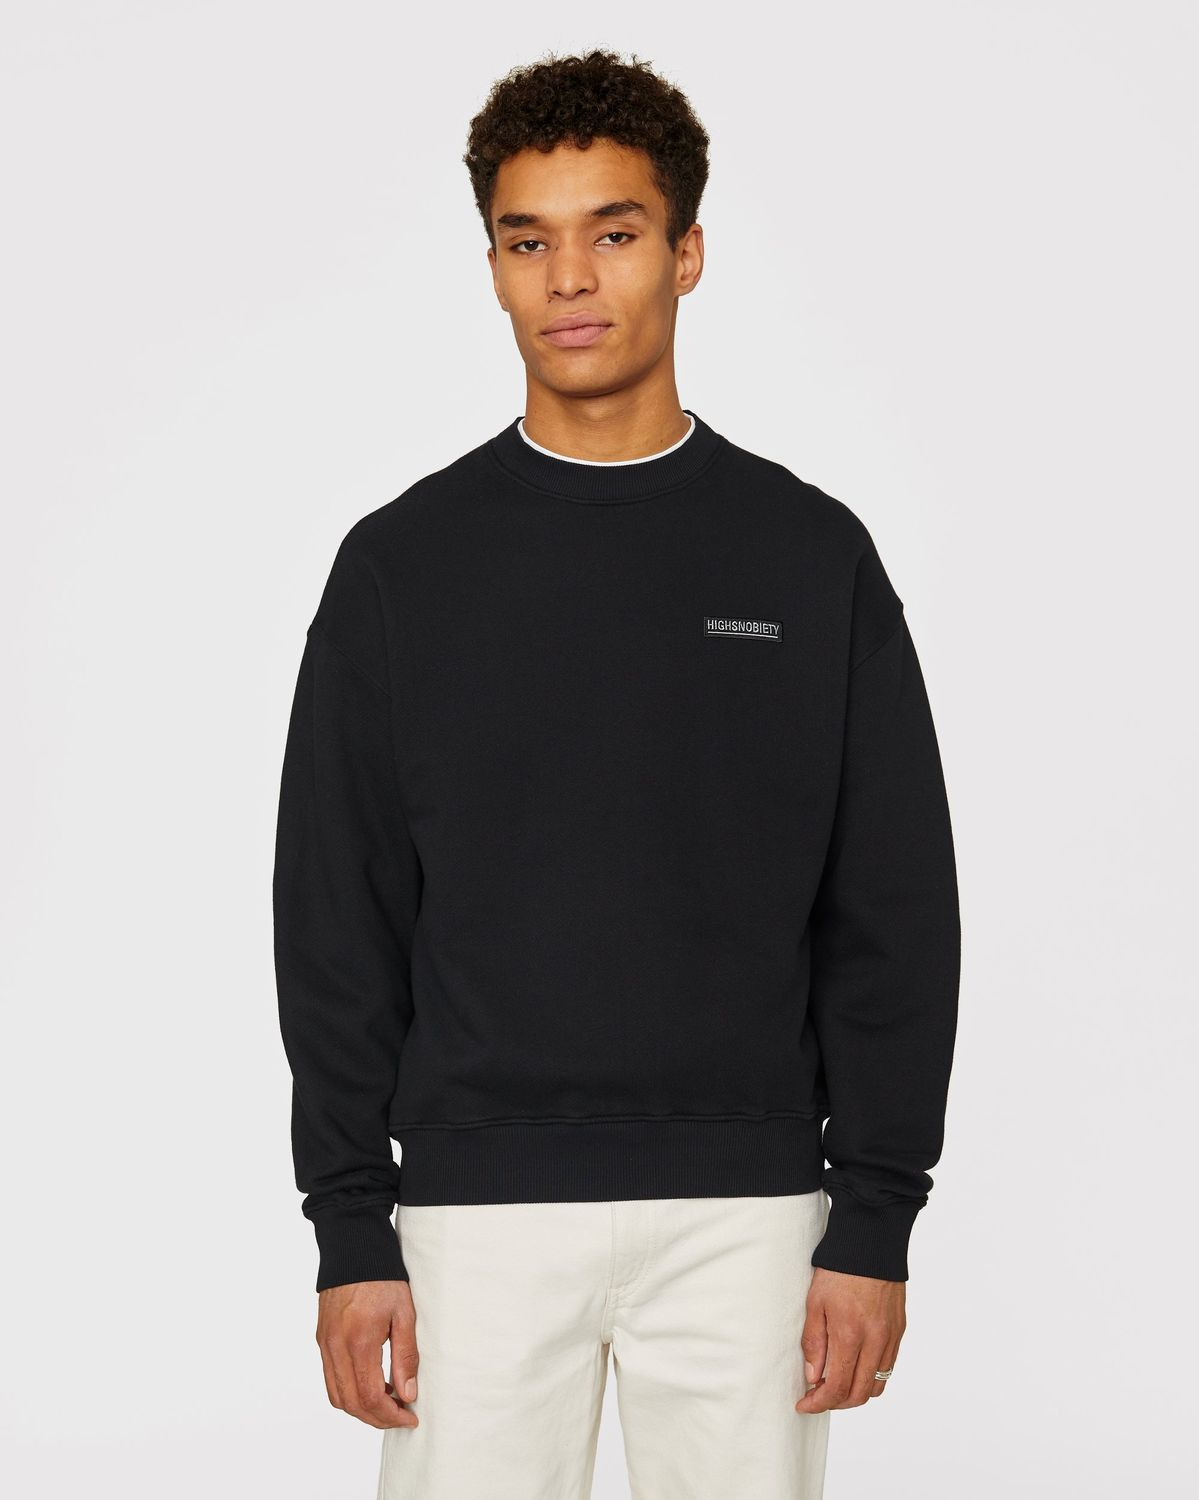 Highsnobiety Staples - Sweatshirt Black - Image 2